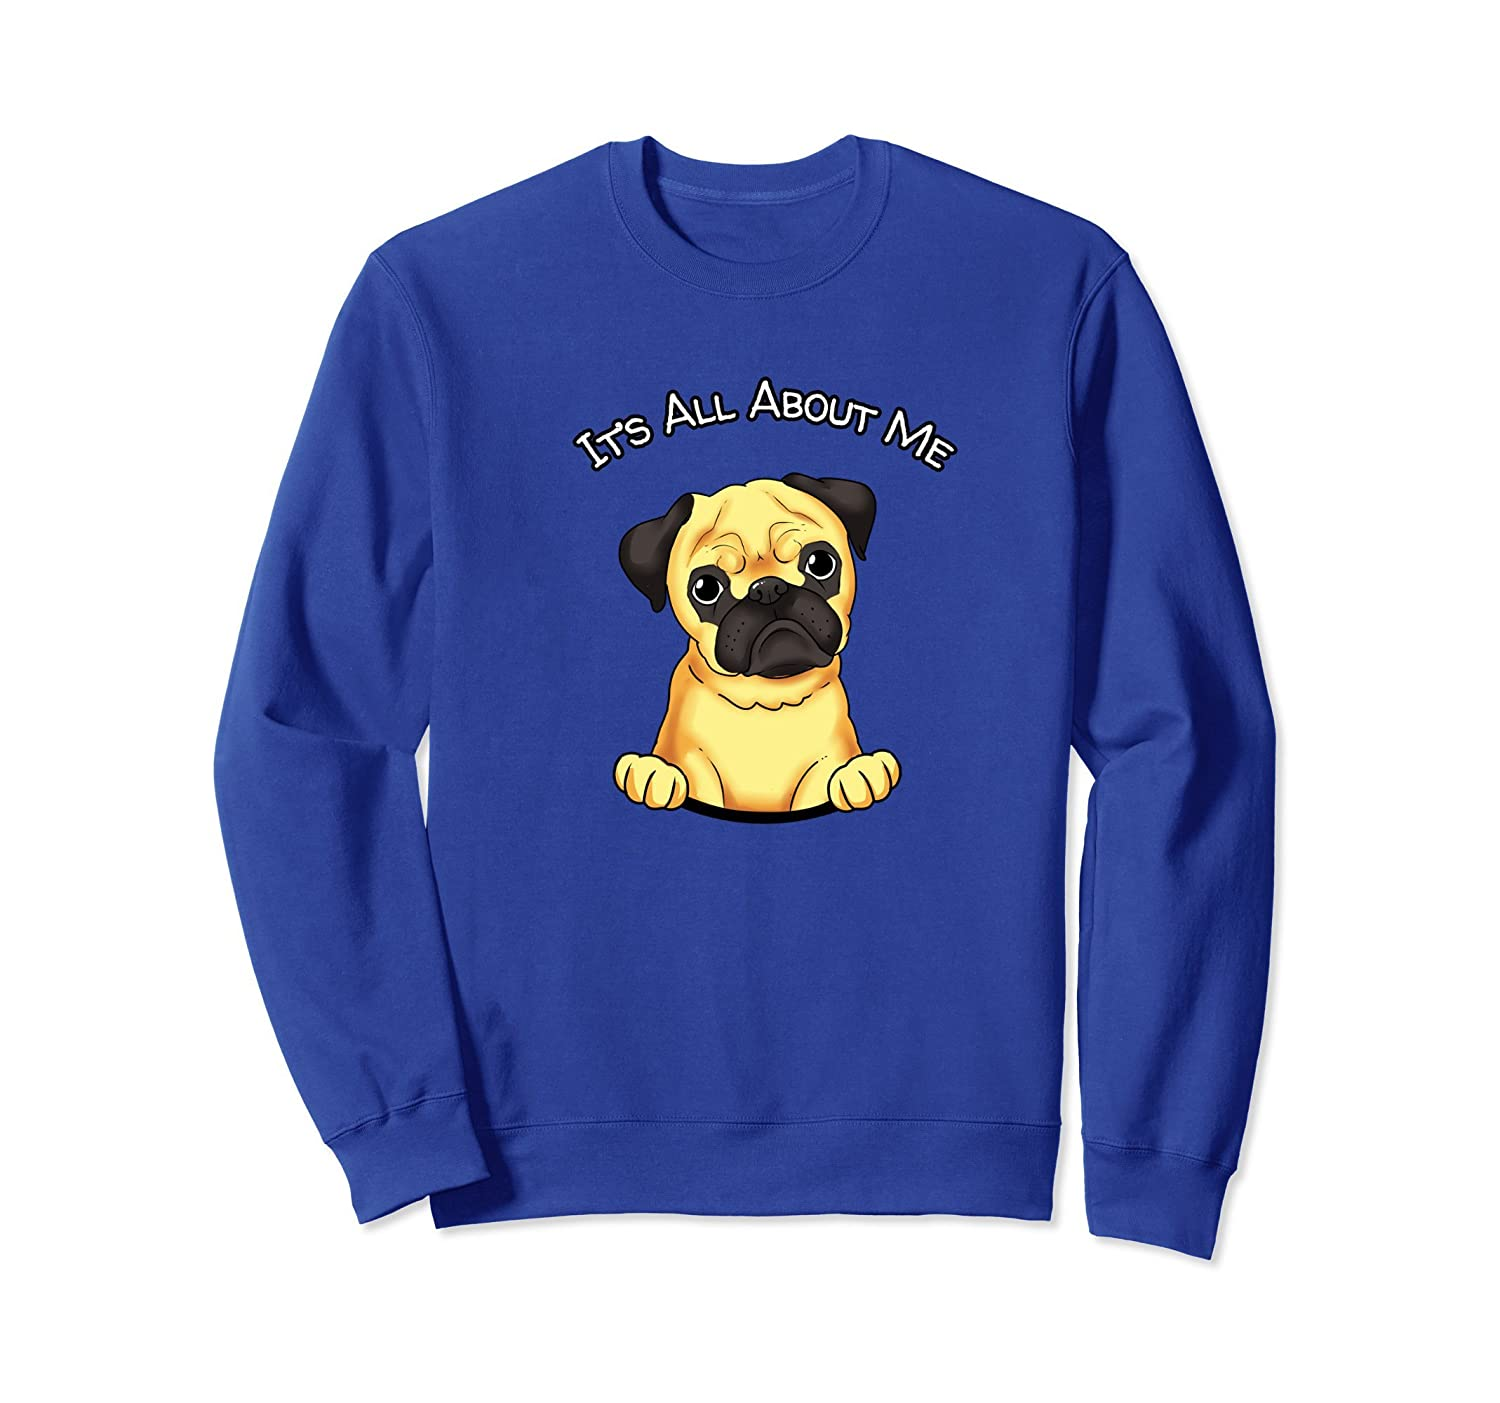 Awesome Pug Sweatshirt Dog Lover Pugs Sweater-TH